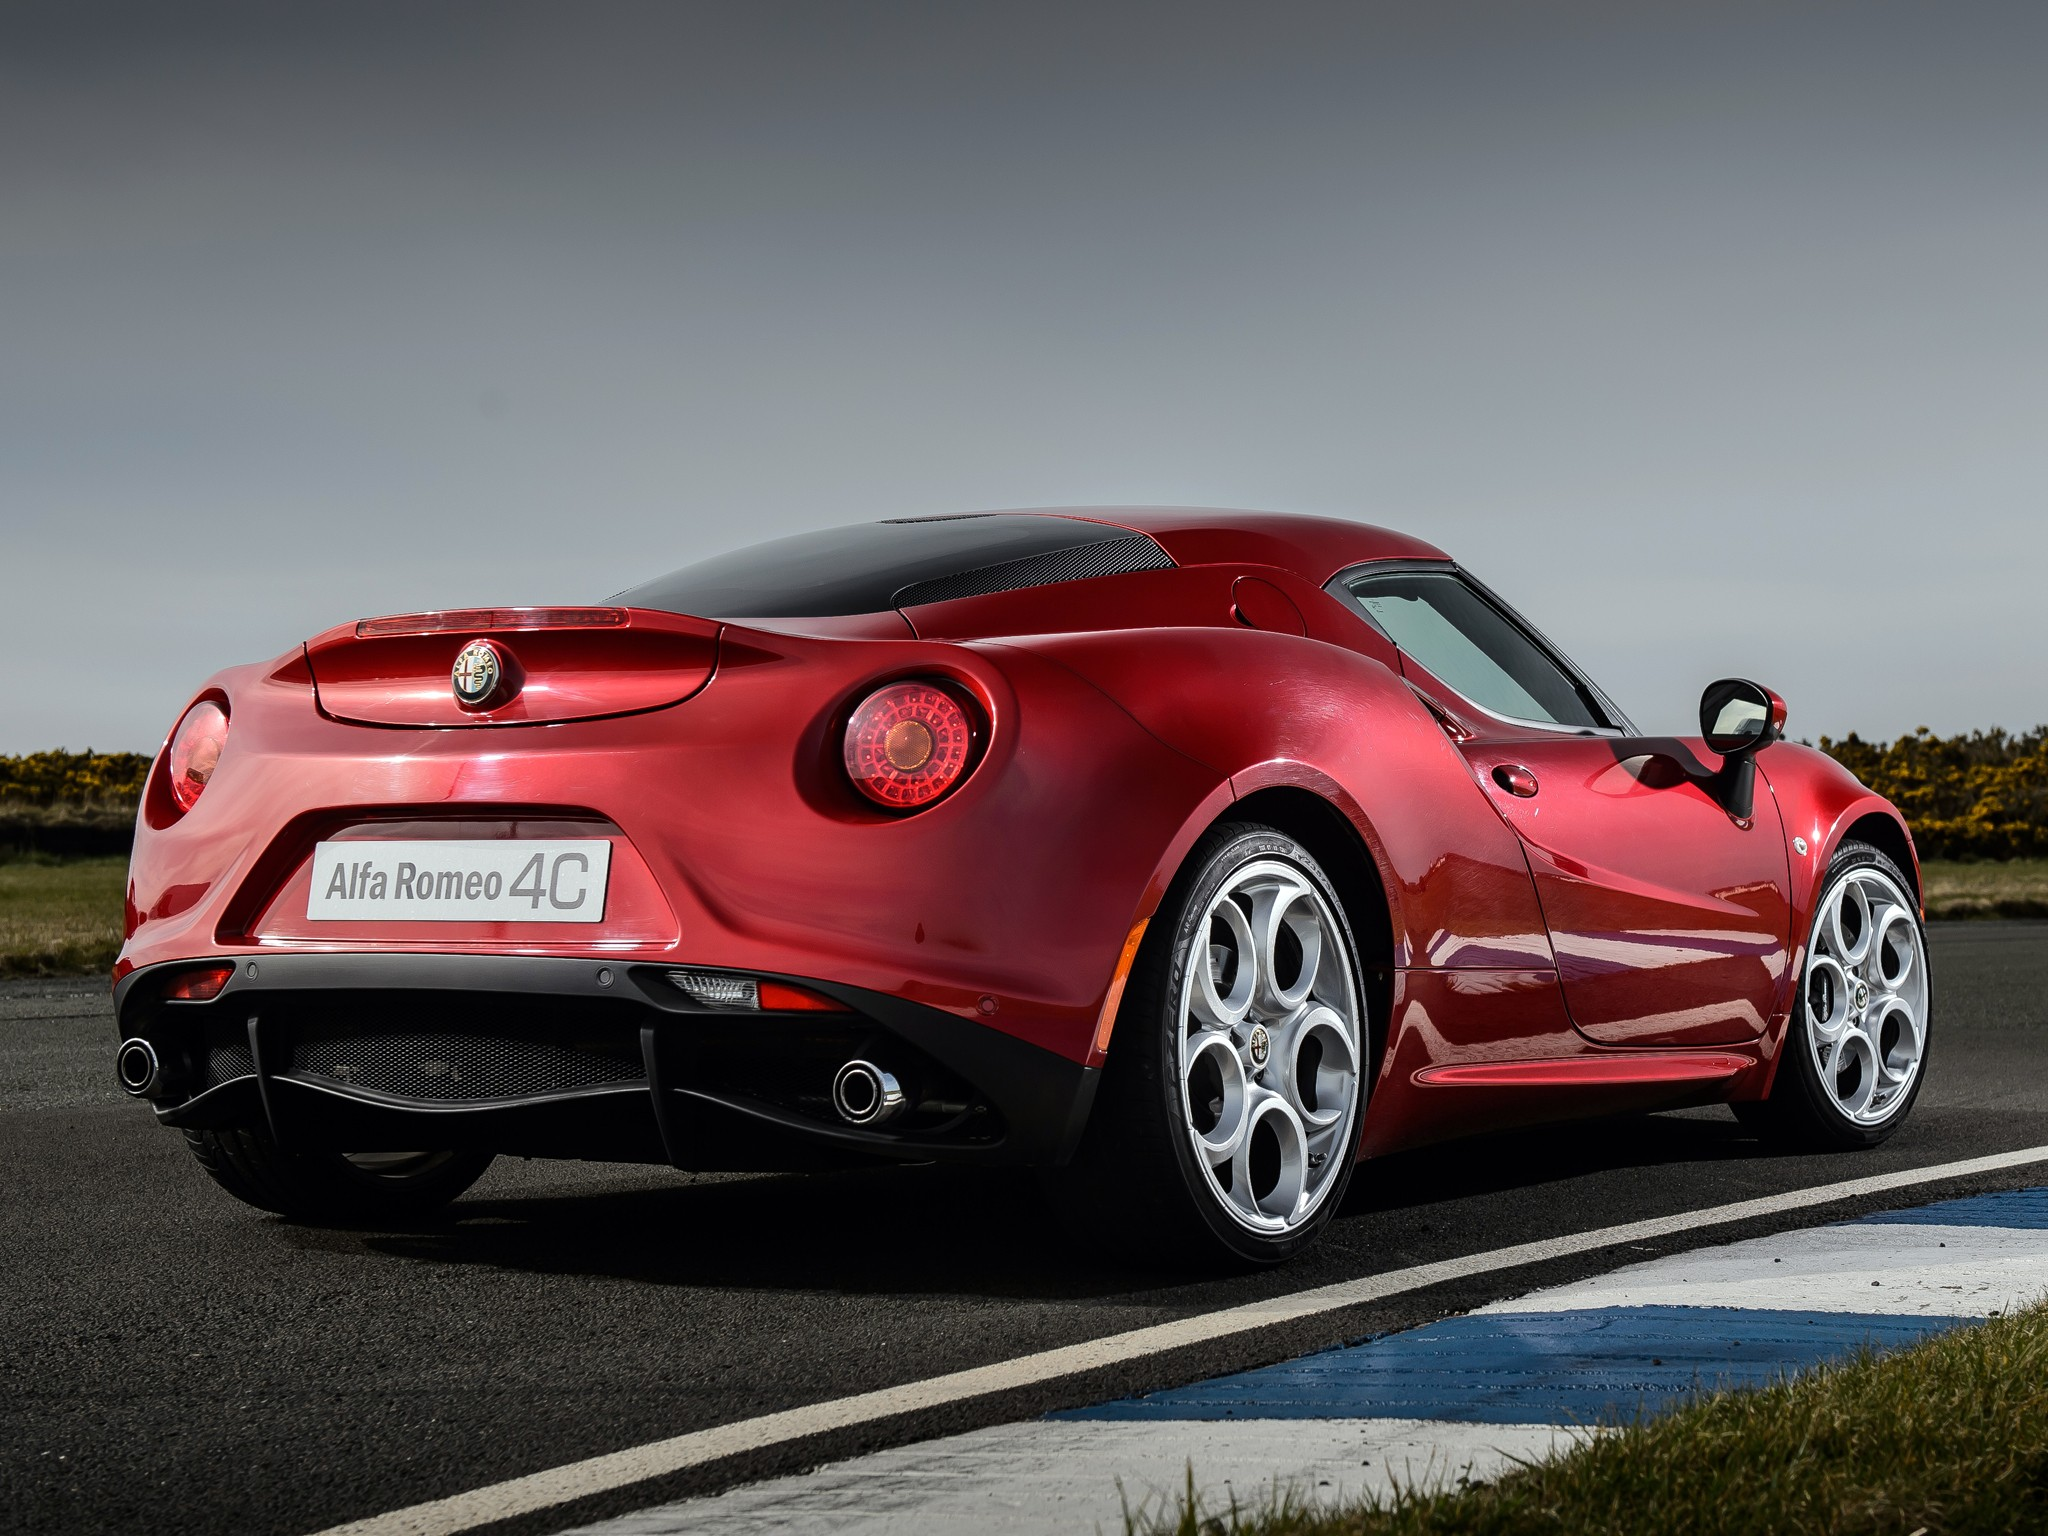 alfa romeo 4c specs 2013 2014 2015 2016 2017 2018 autoevolution. Black Bedroom Furniture Sets. Home Design Ideas